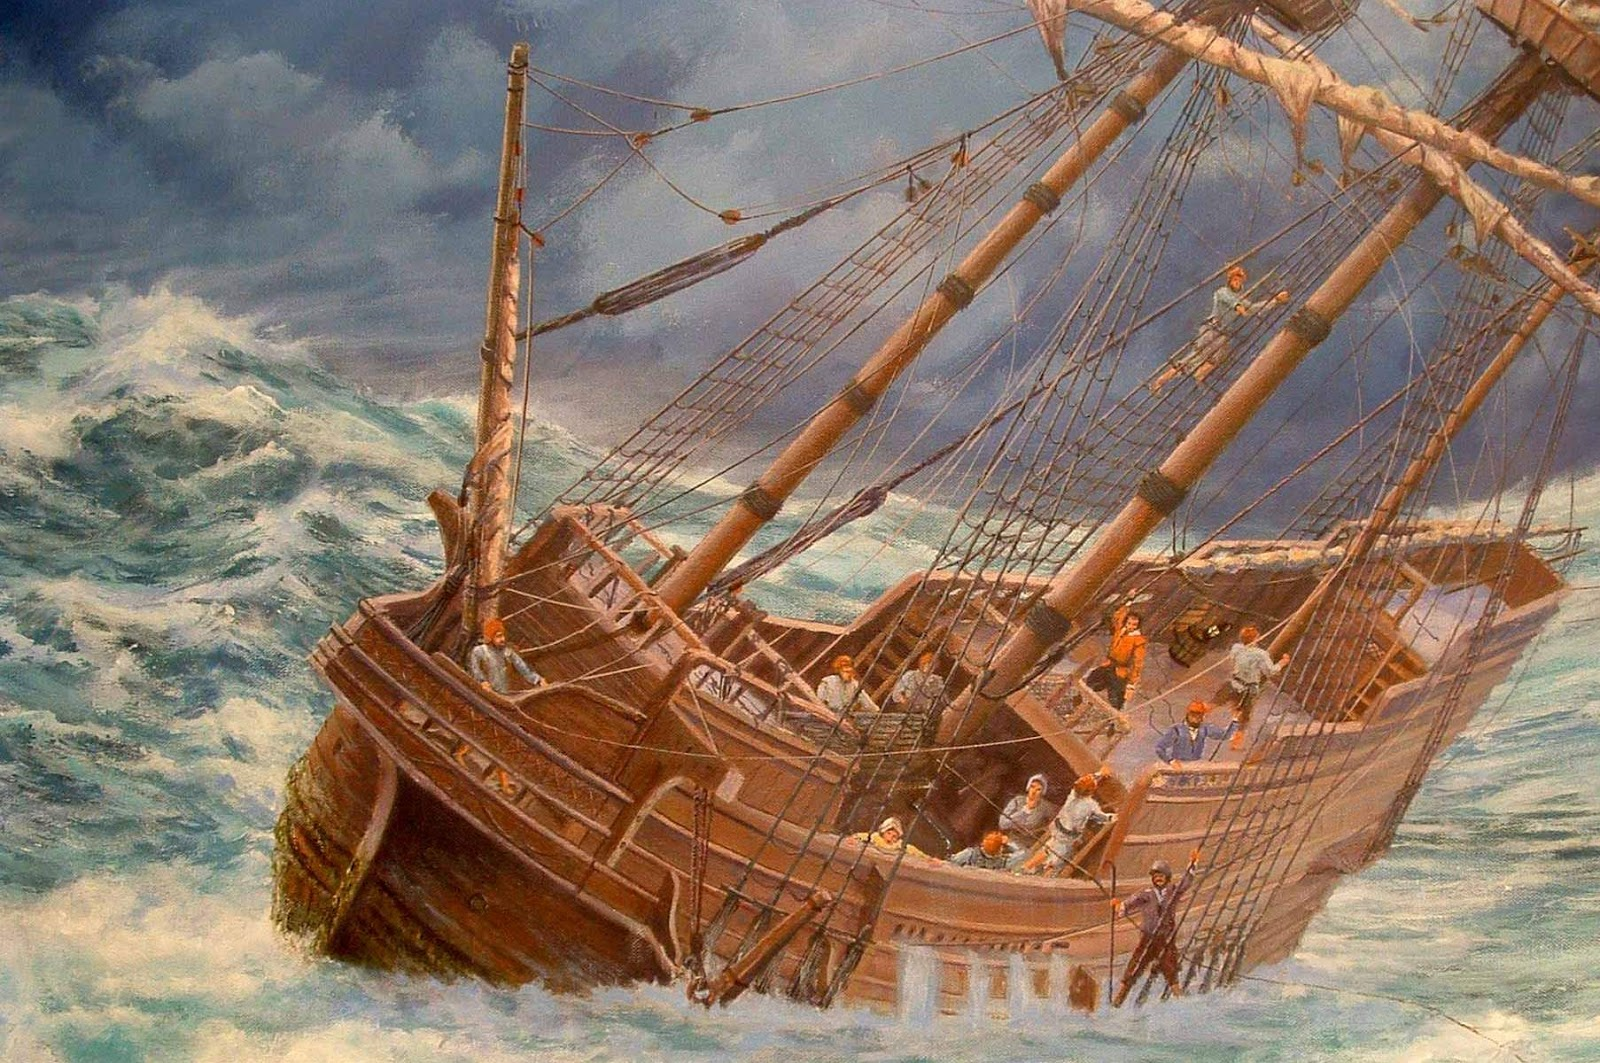 the pilgrims and the mayflower Adapted from the new york times bestseller mayflower after a dangerous journey across the atlantic, the mayflowers passengers were saved from certain destruction with the help of the natives of the plymouth region for fifty years a fragile peace was maintained as pilgrims and native americans.